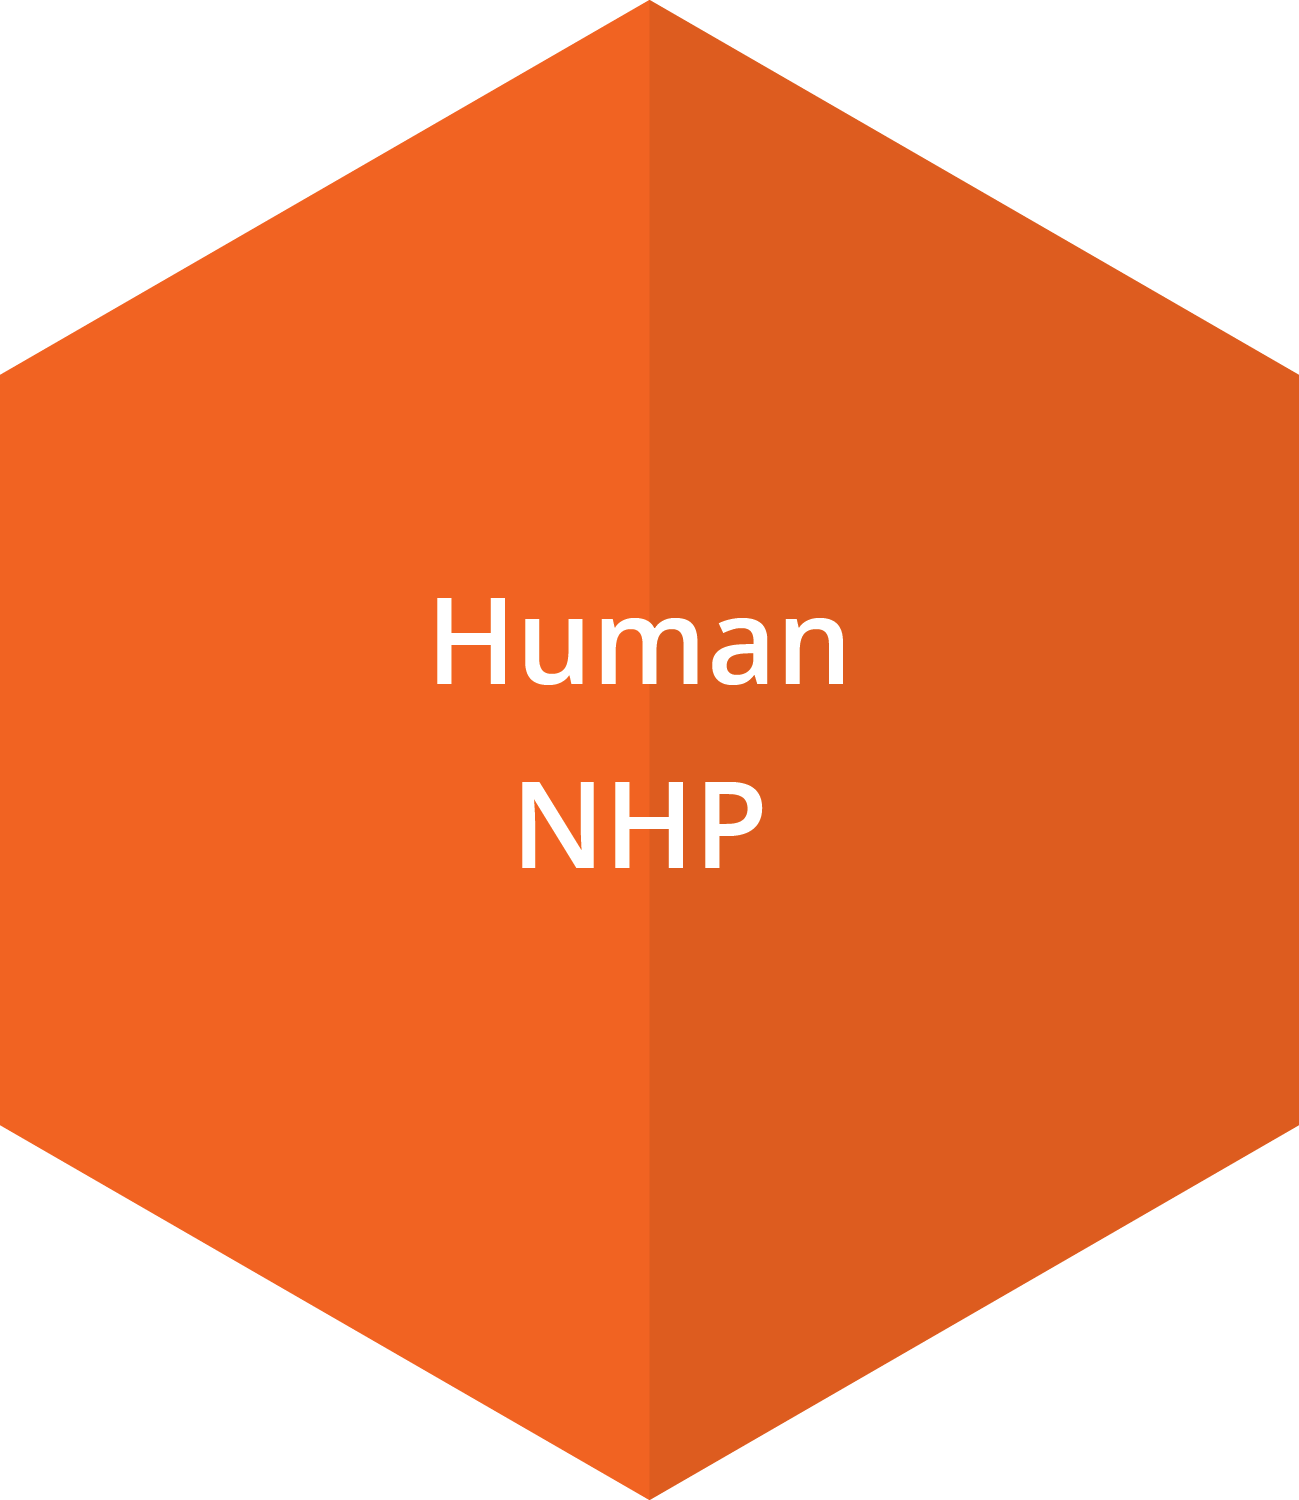 PBMCs may be obtained from humans and NHPs for target validation.